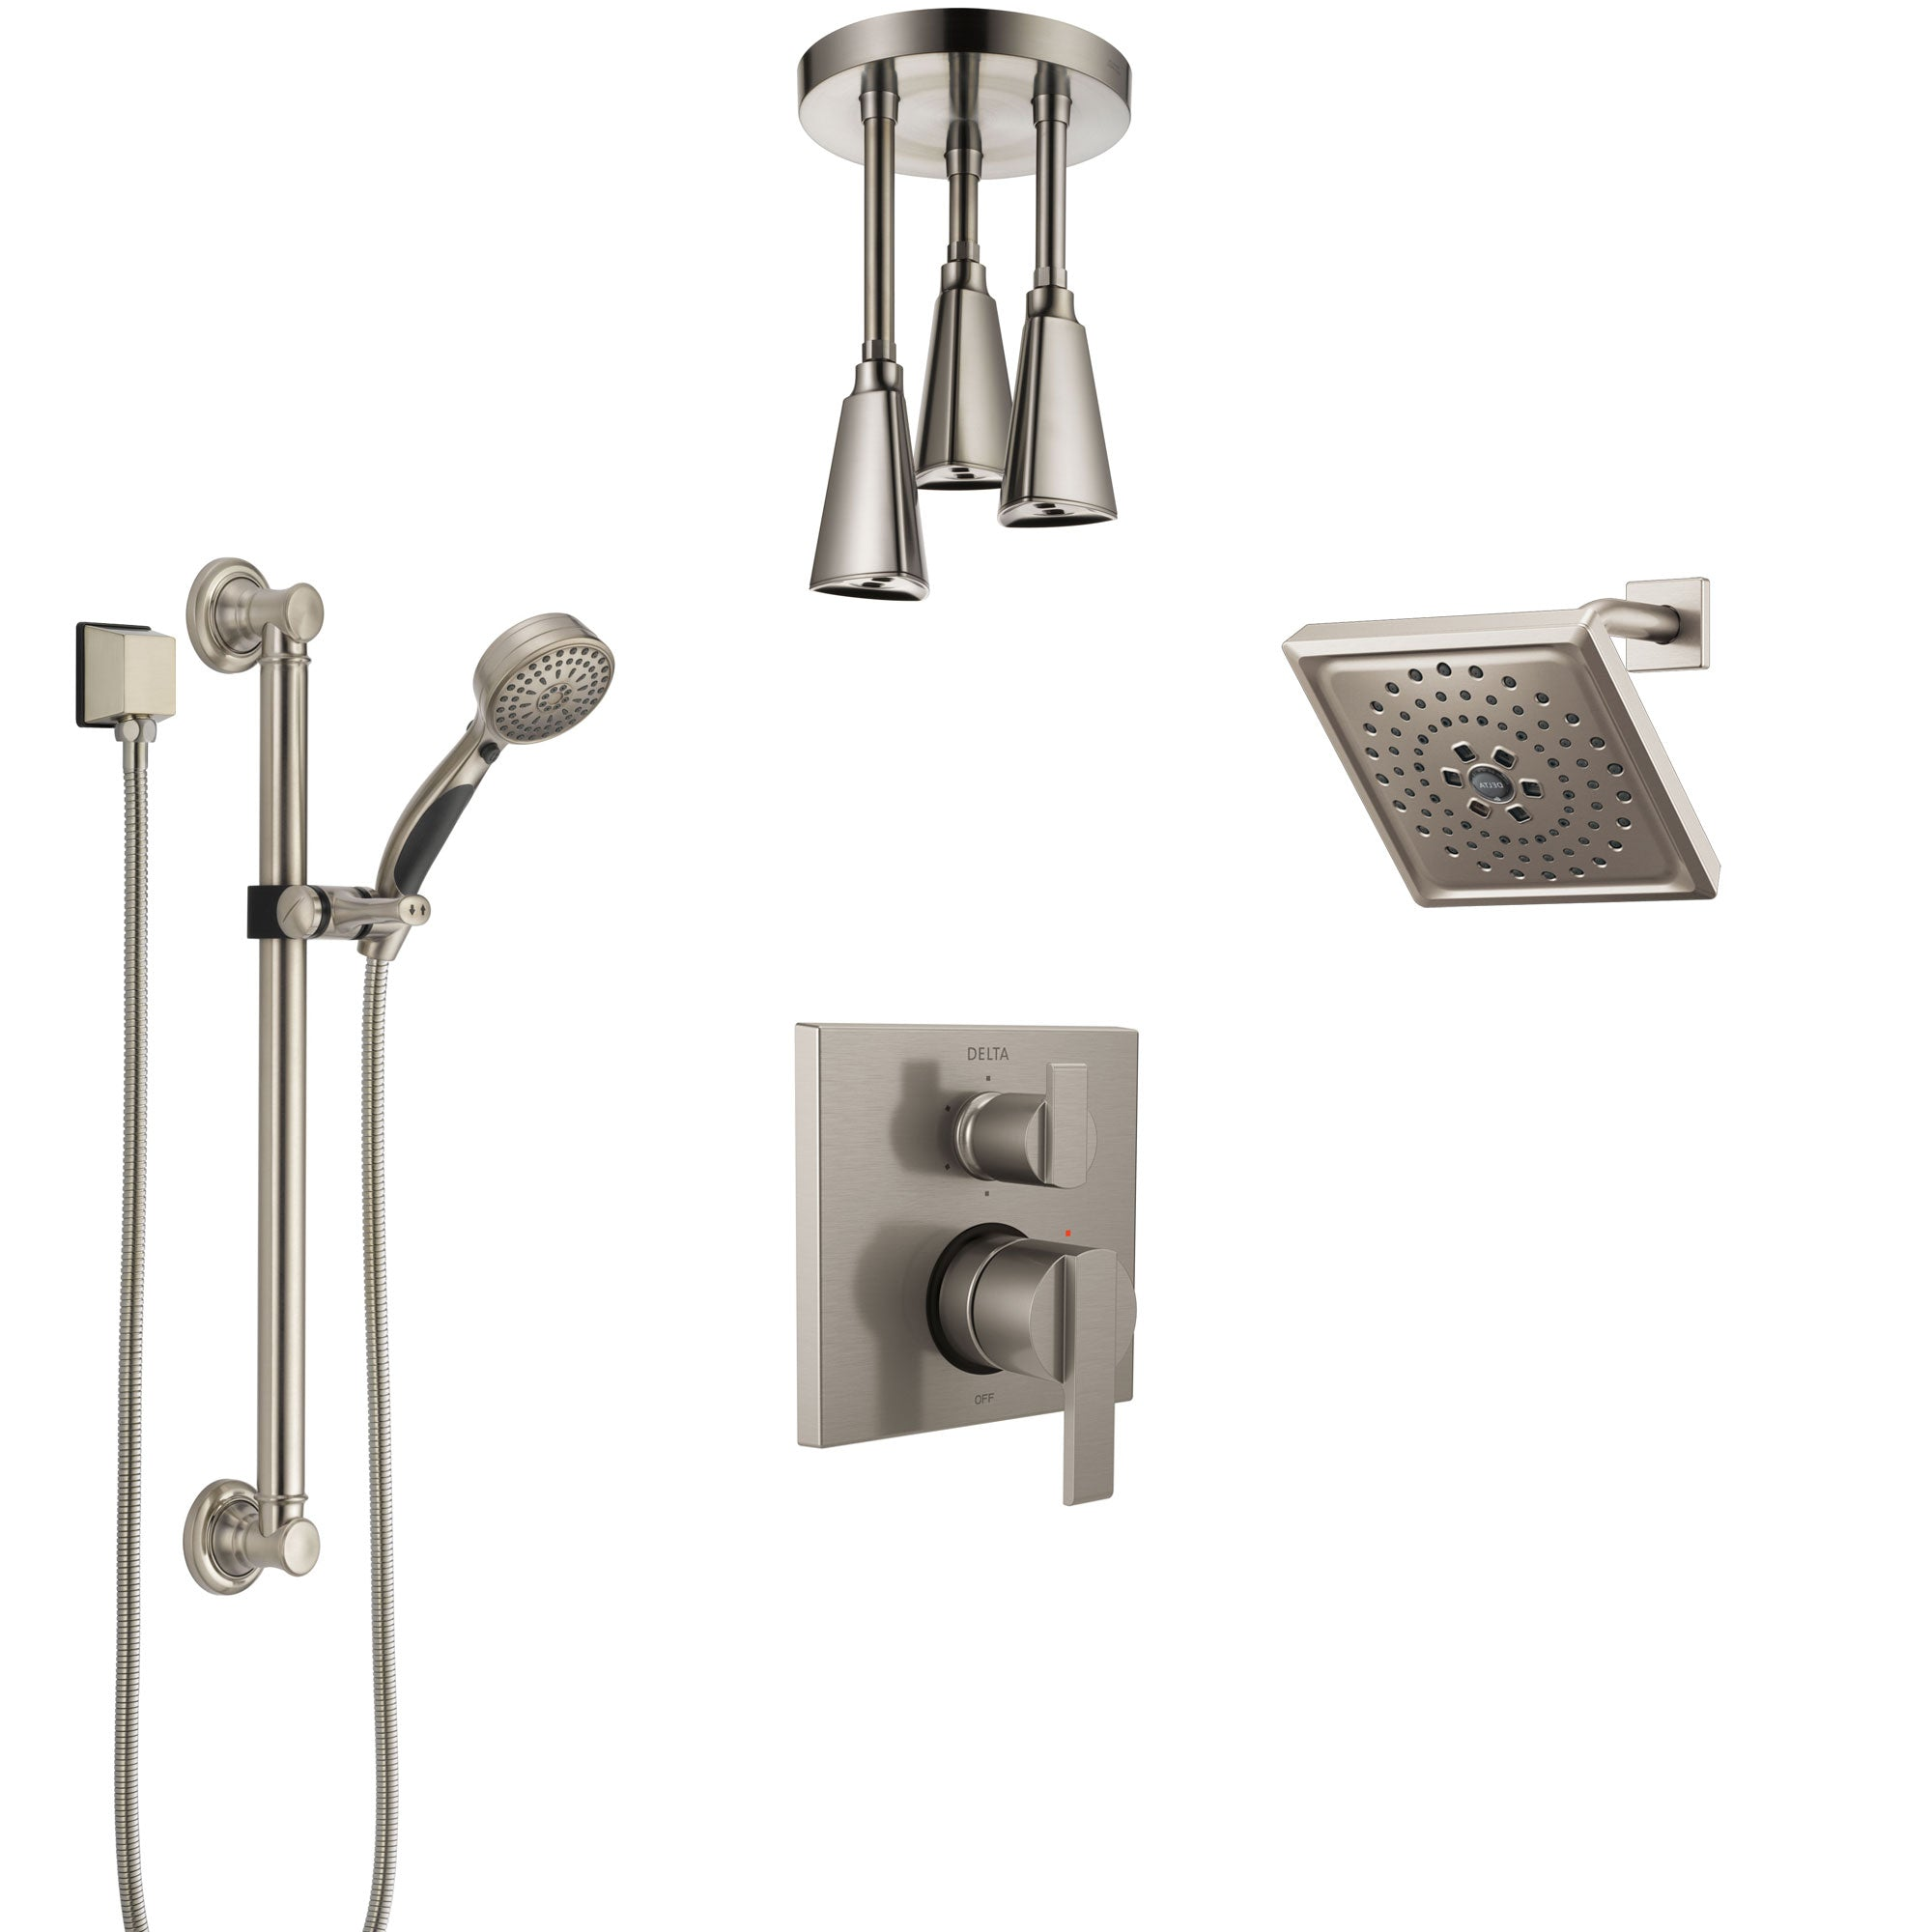 Delta Ara Stainless Steel Finish Integrated Diverter Shower System Control Handle, Showerhead, Ceiling Showerhead, and Grab Bar Hand Shower SS24967SS9